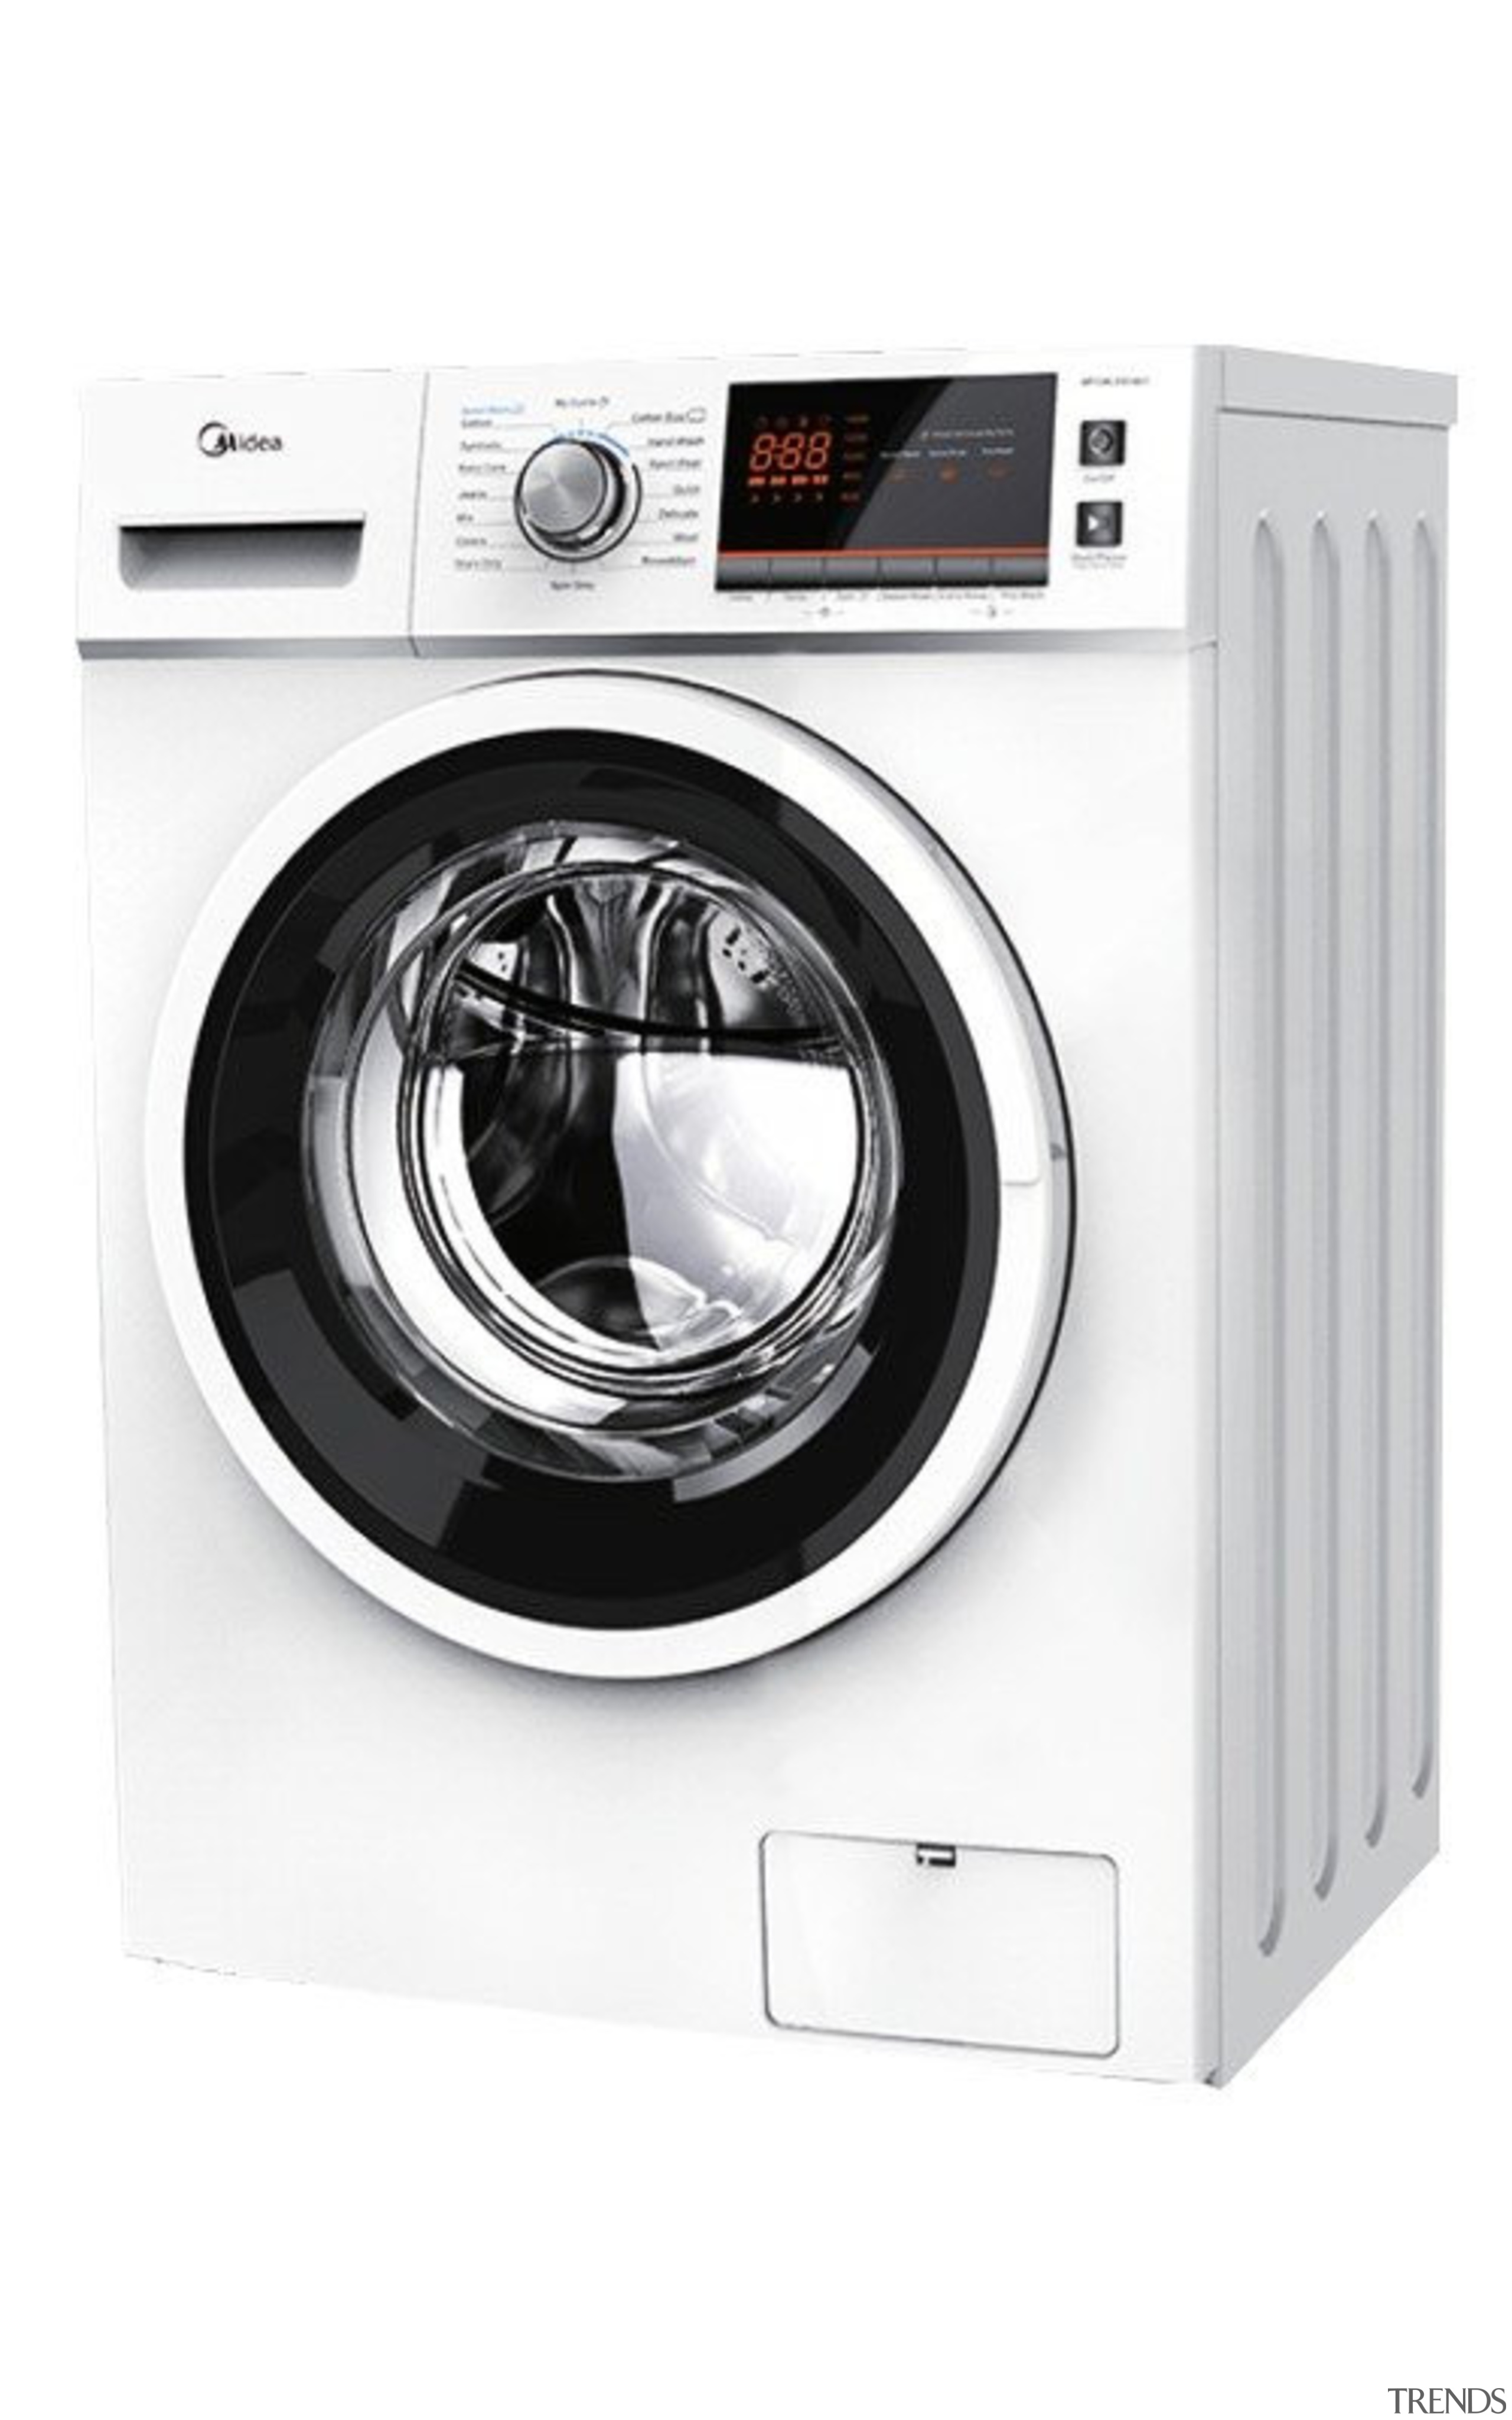 7.5 Kg Front Load Washing MachineCapacity: 7.5Kg16 Programs, clothes dryer, home appliance, laundry, major appliance, product, washing machine, white